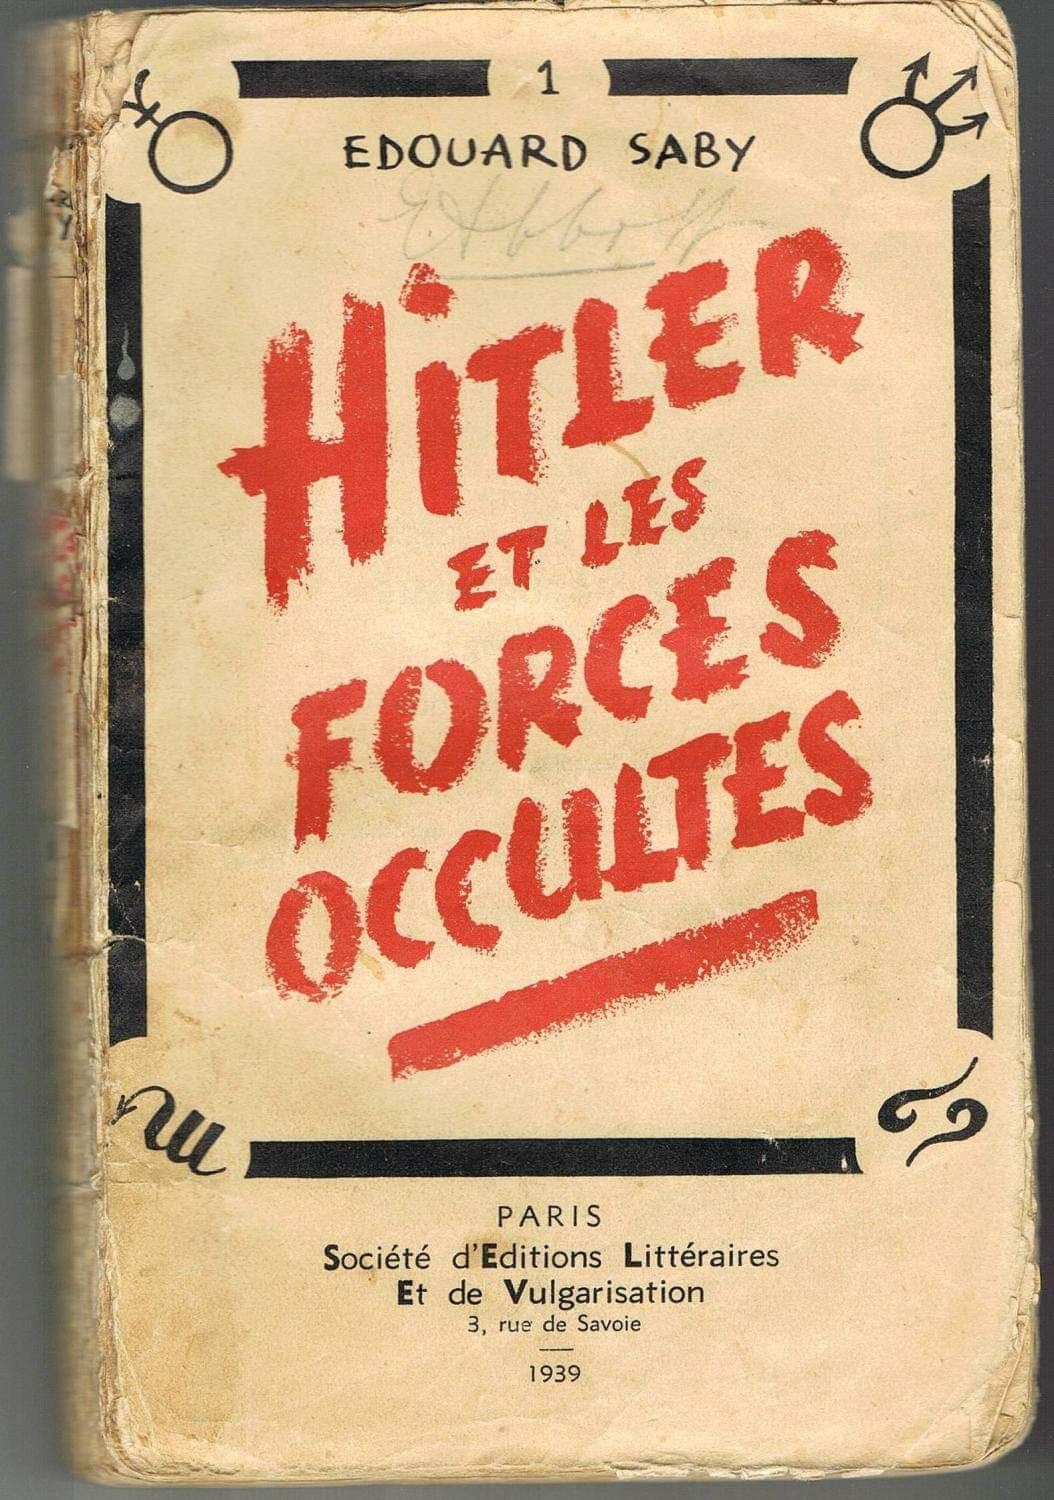 """""""Hitler et les Forces Occultes"""" di Edouard Saby"""